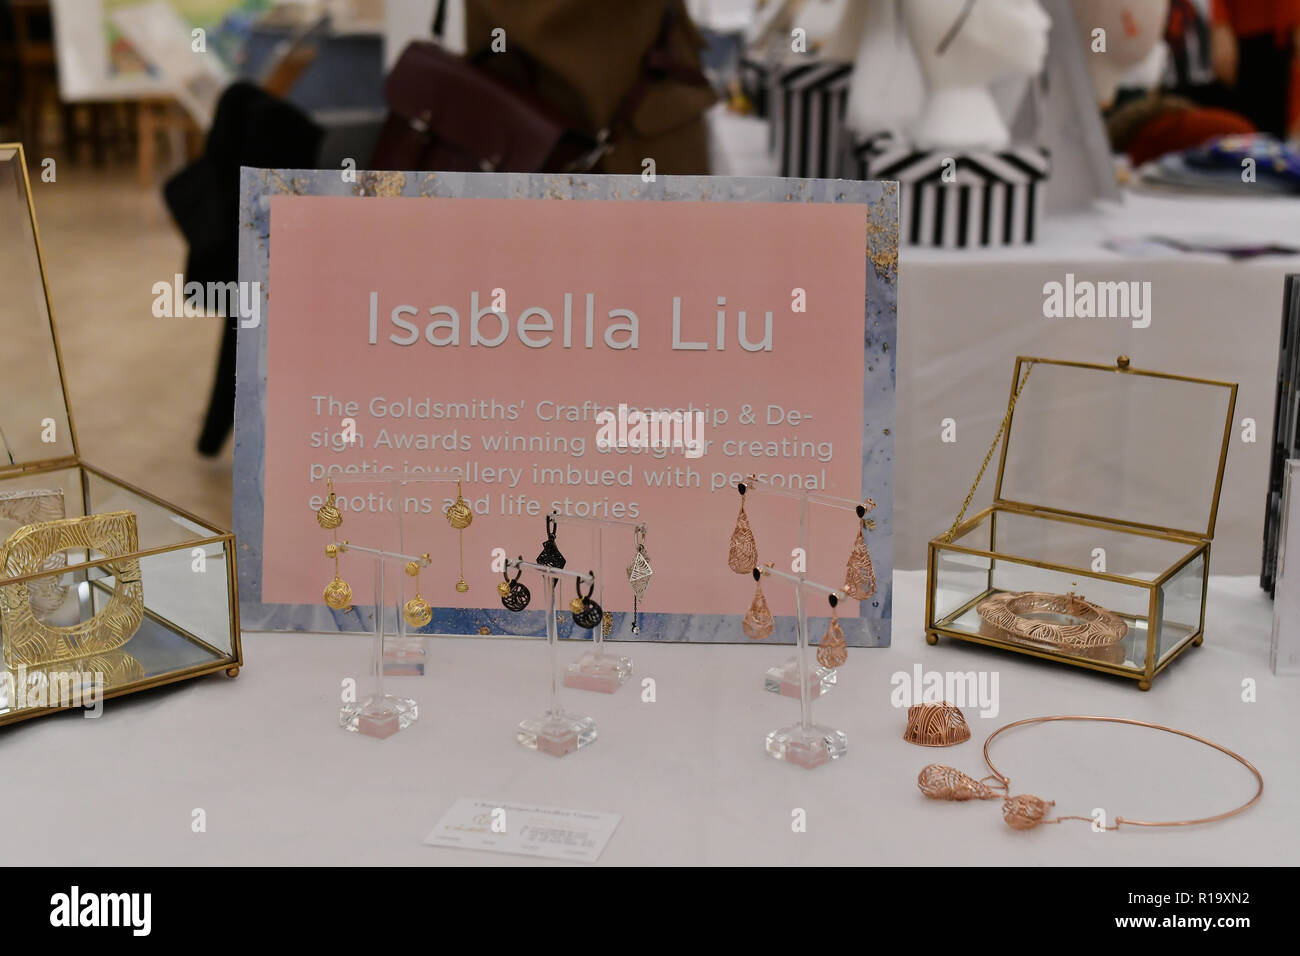 London, UK. 10th Nov, 2018. Winter blossom fair: A celebration of east asian art, craft and design exhibition at China Exchange on 10 November 2018, London, UK. Credit: Picture Capital/Alamy Live News - Stock Image